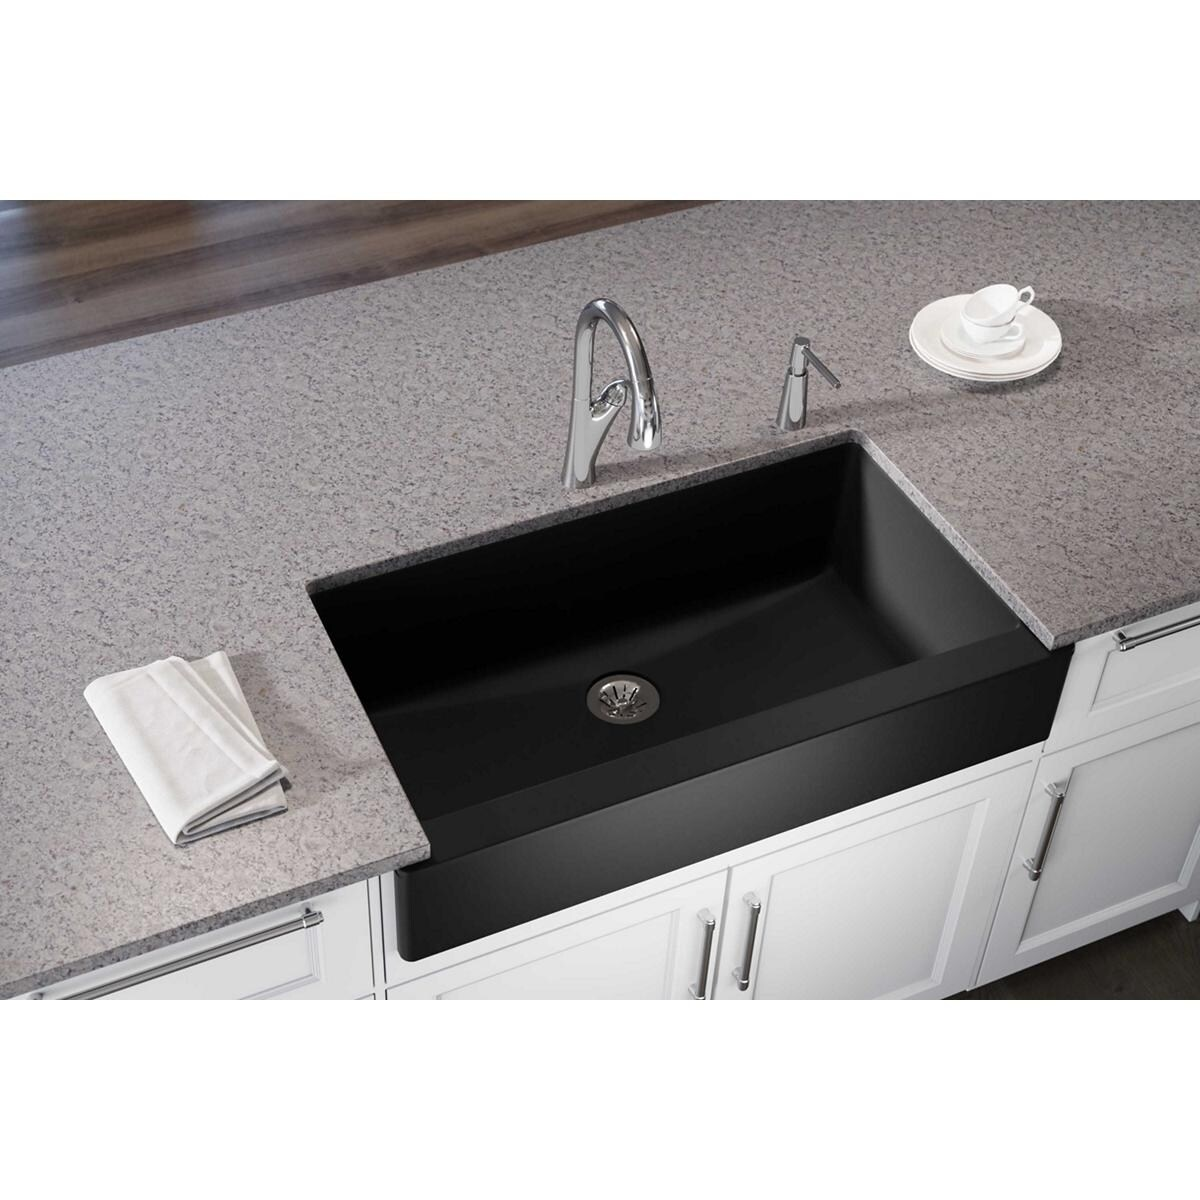 Overstock Farmhouse Sink Buy Kitchen Sinks Online At Overstock Our Best Sinks Deals